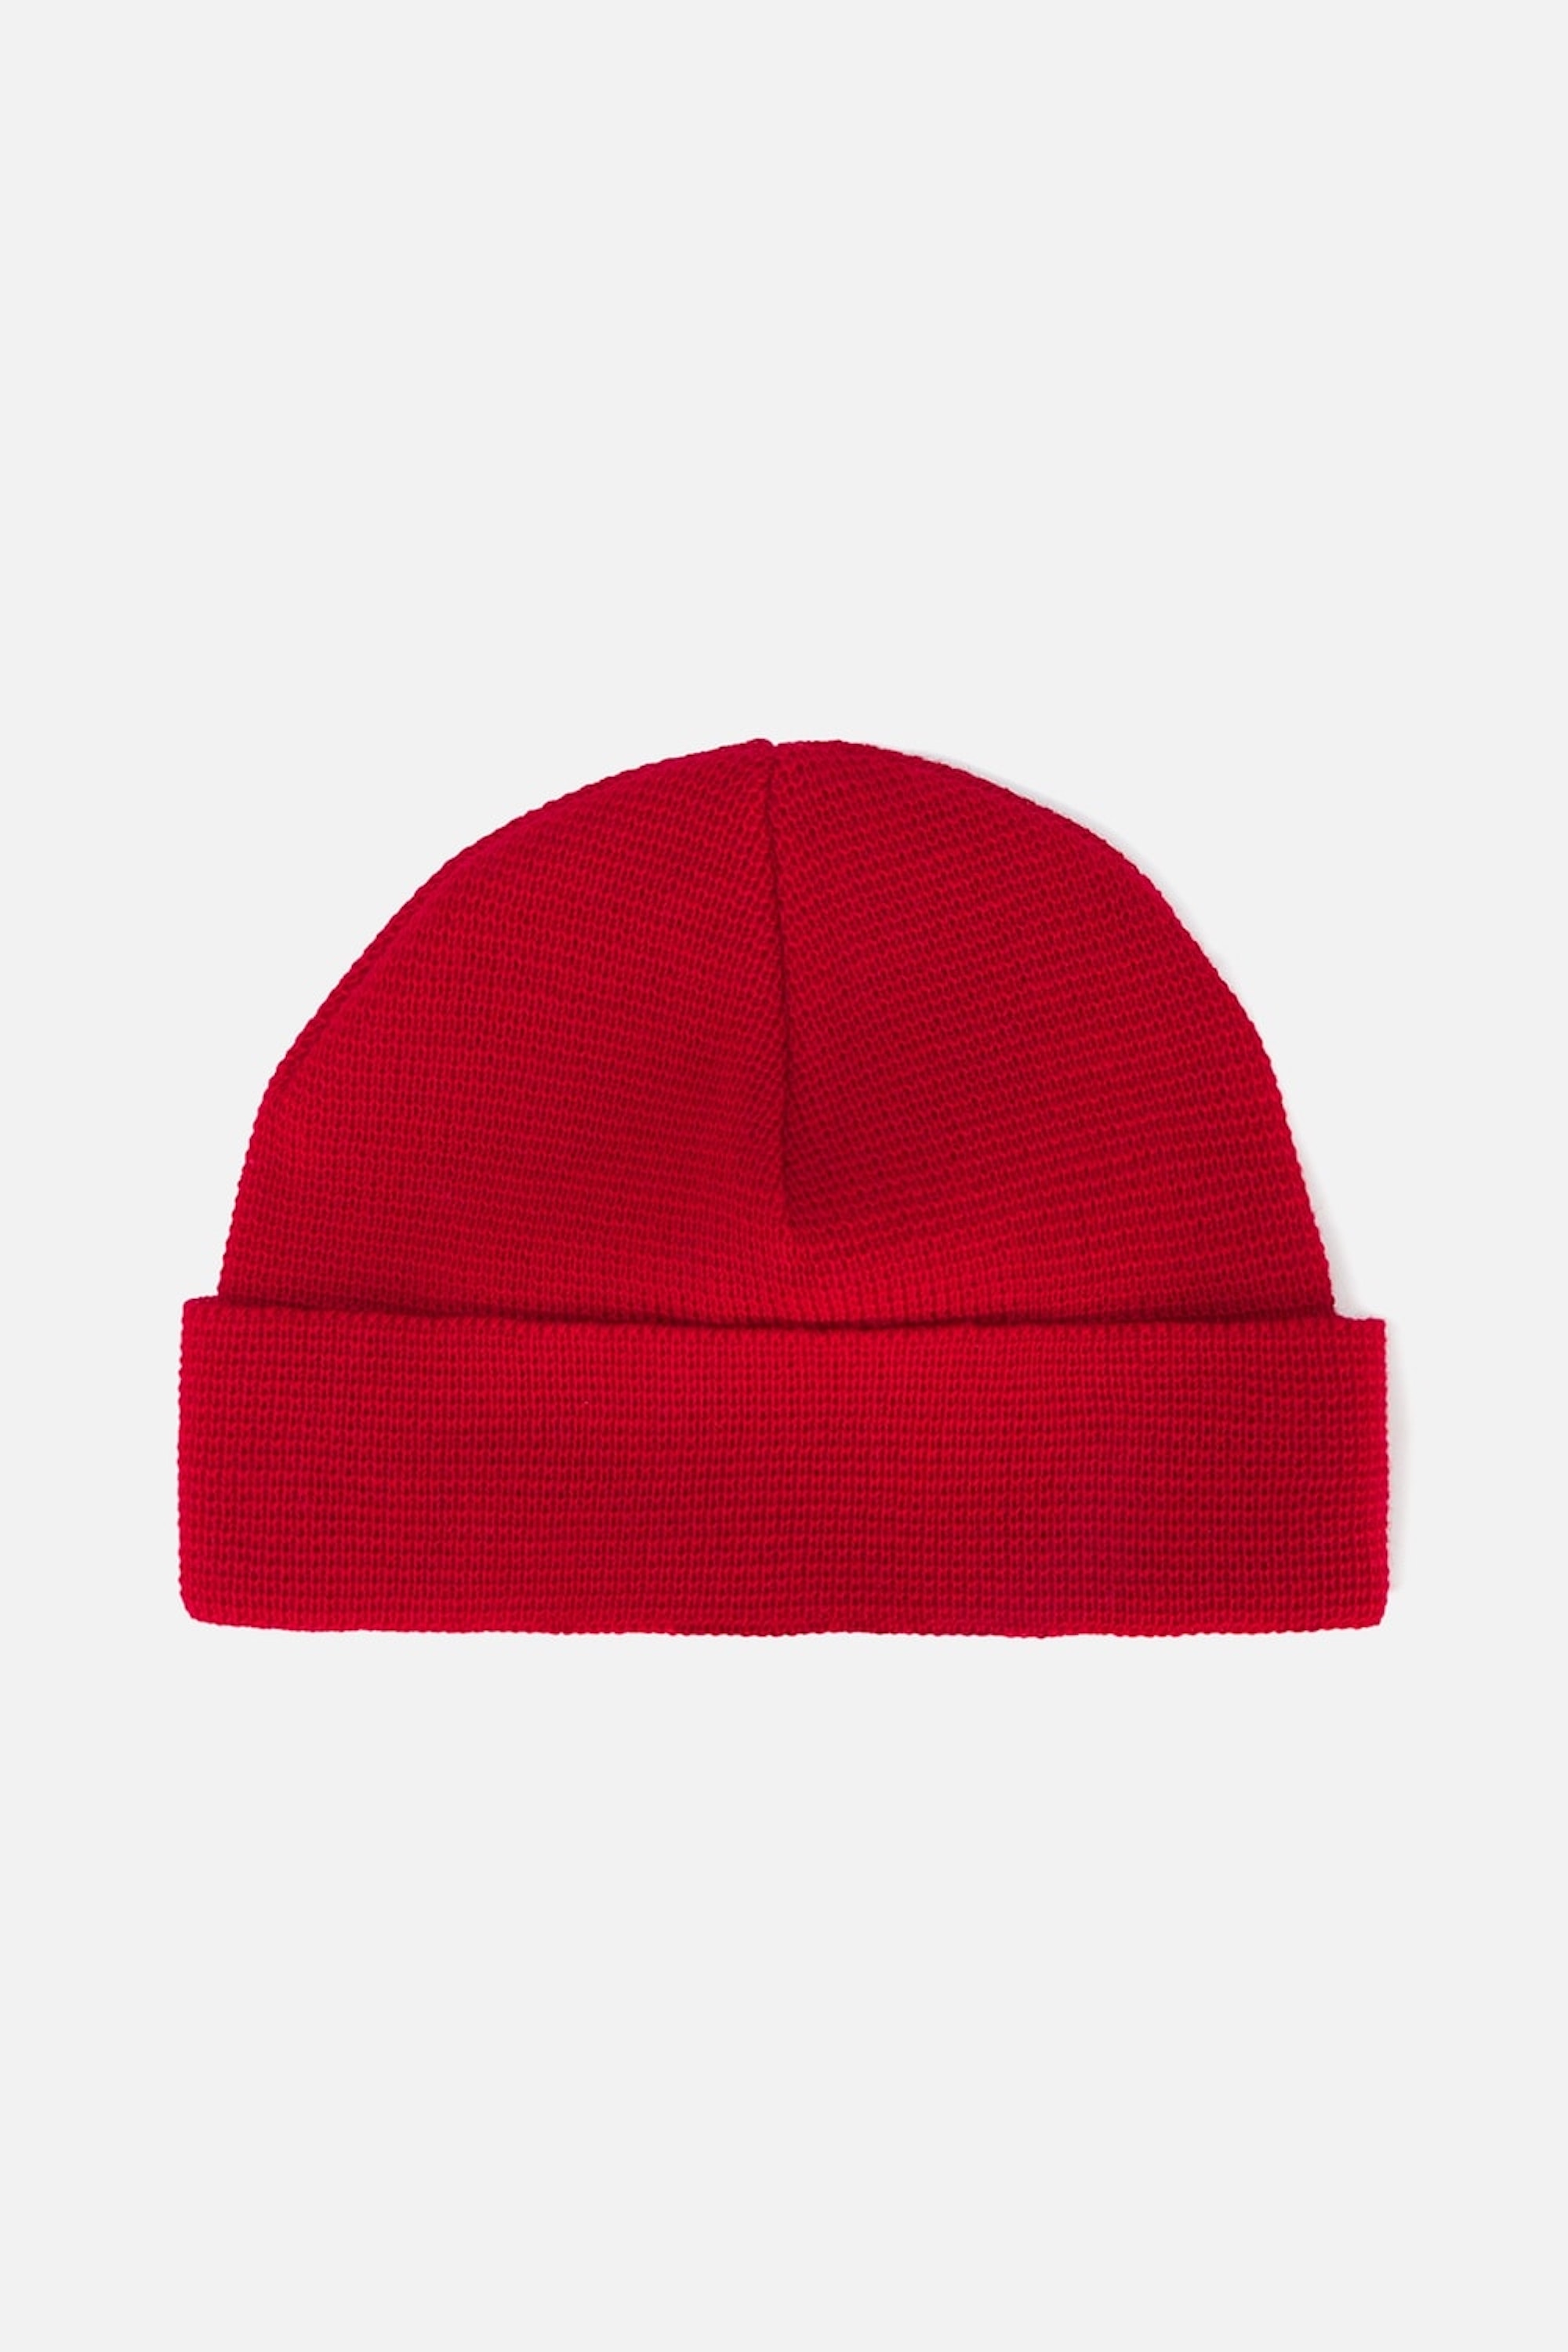 Ami Sidaction Worldwide AIDS Day Red Beanie Wool